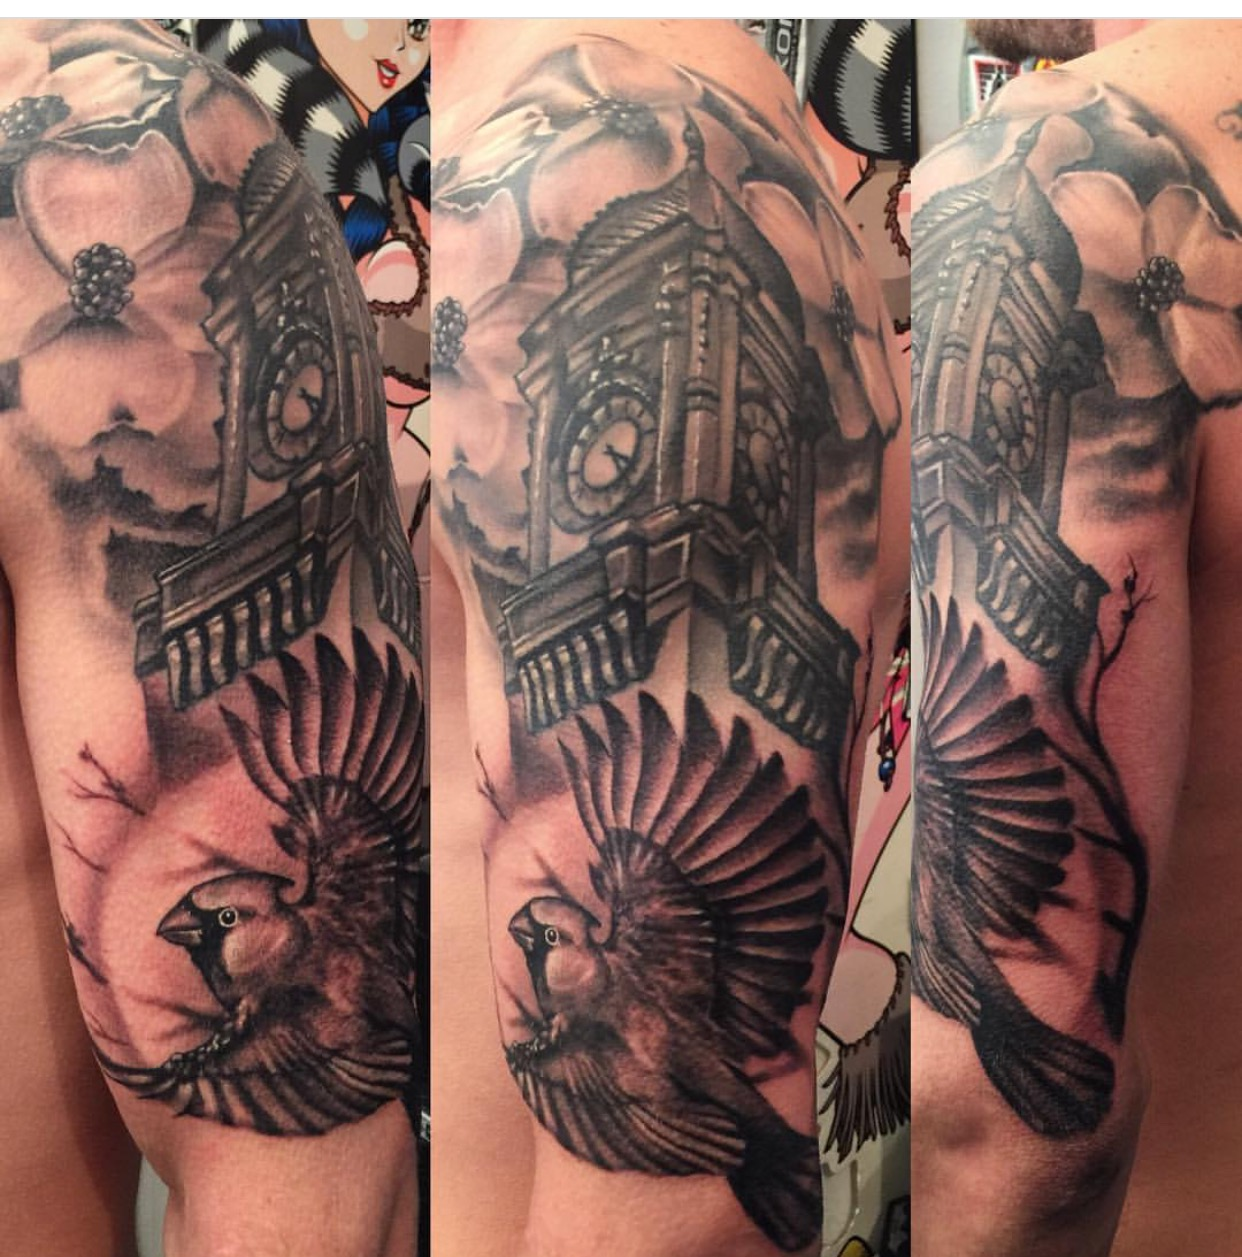 MitchellCanter Tattoos44